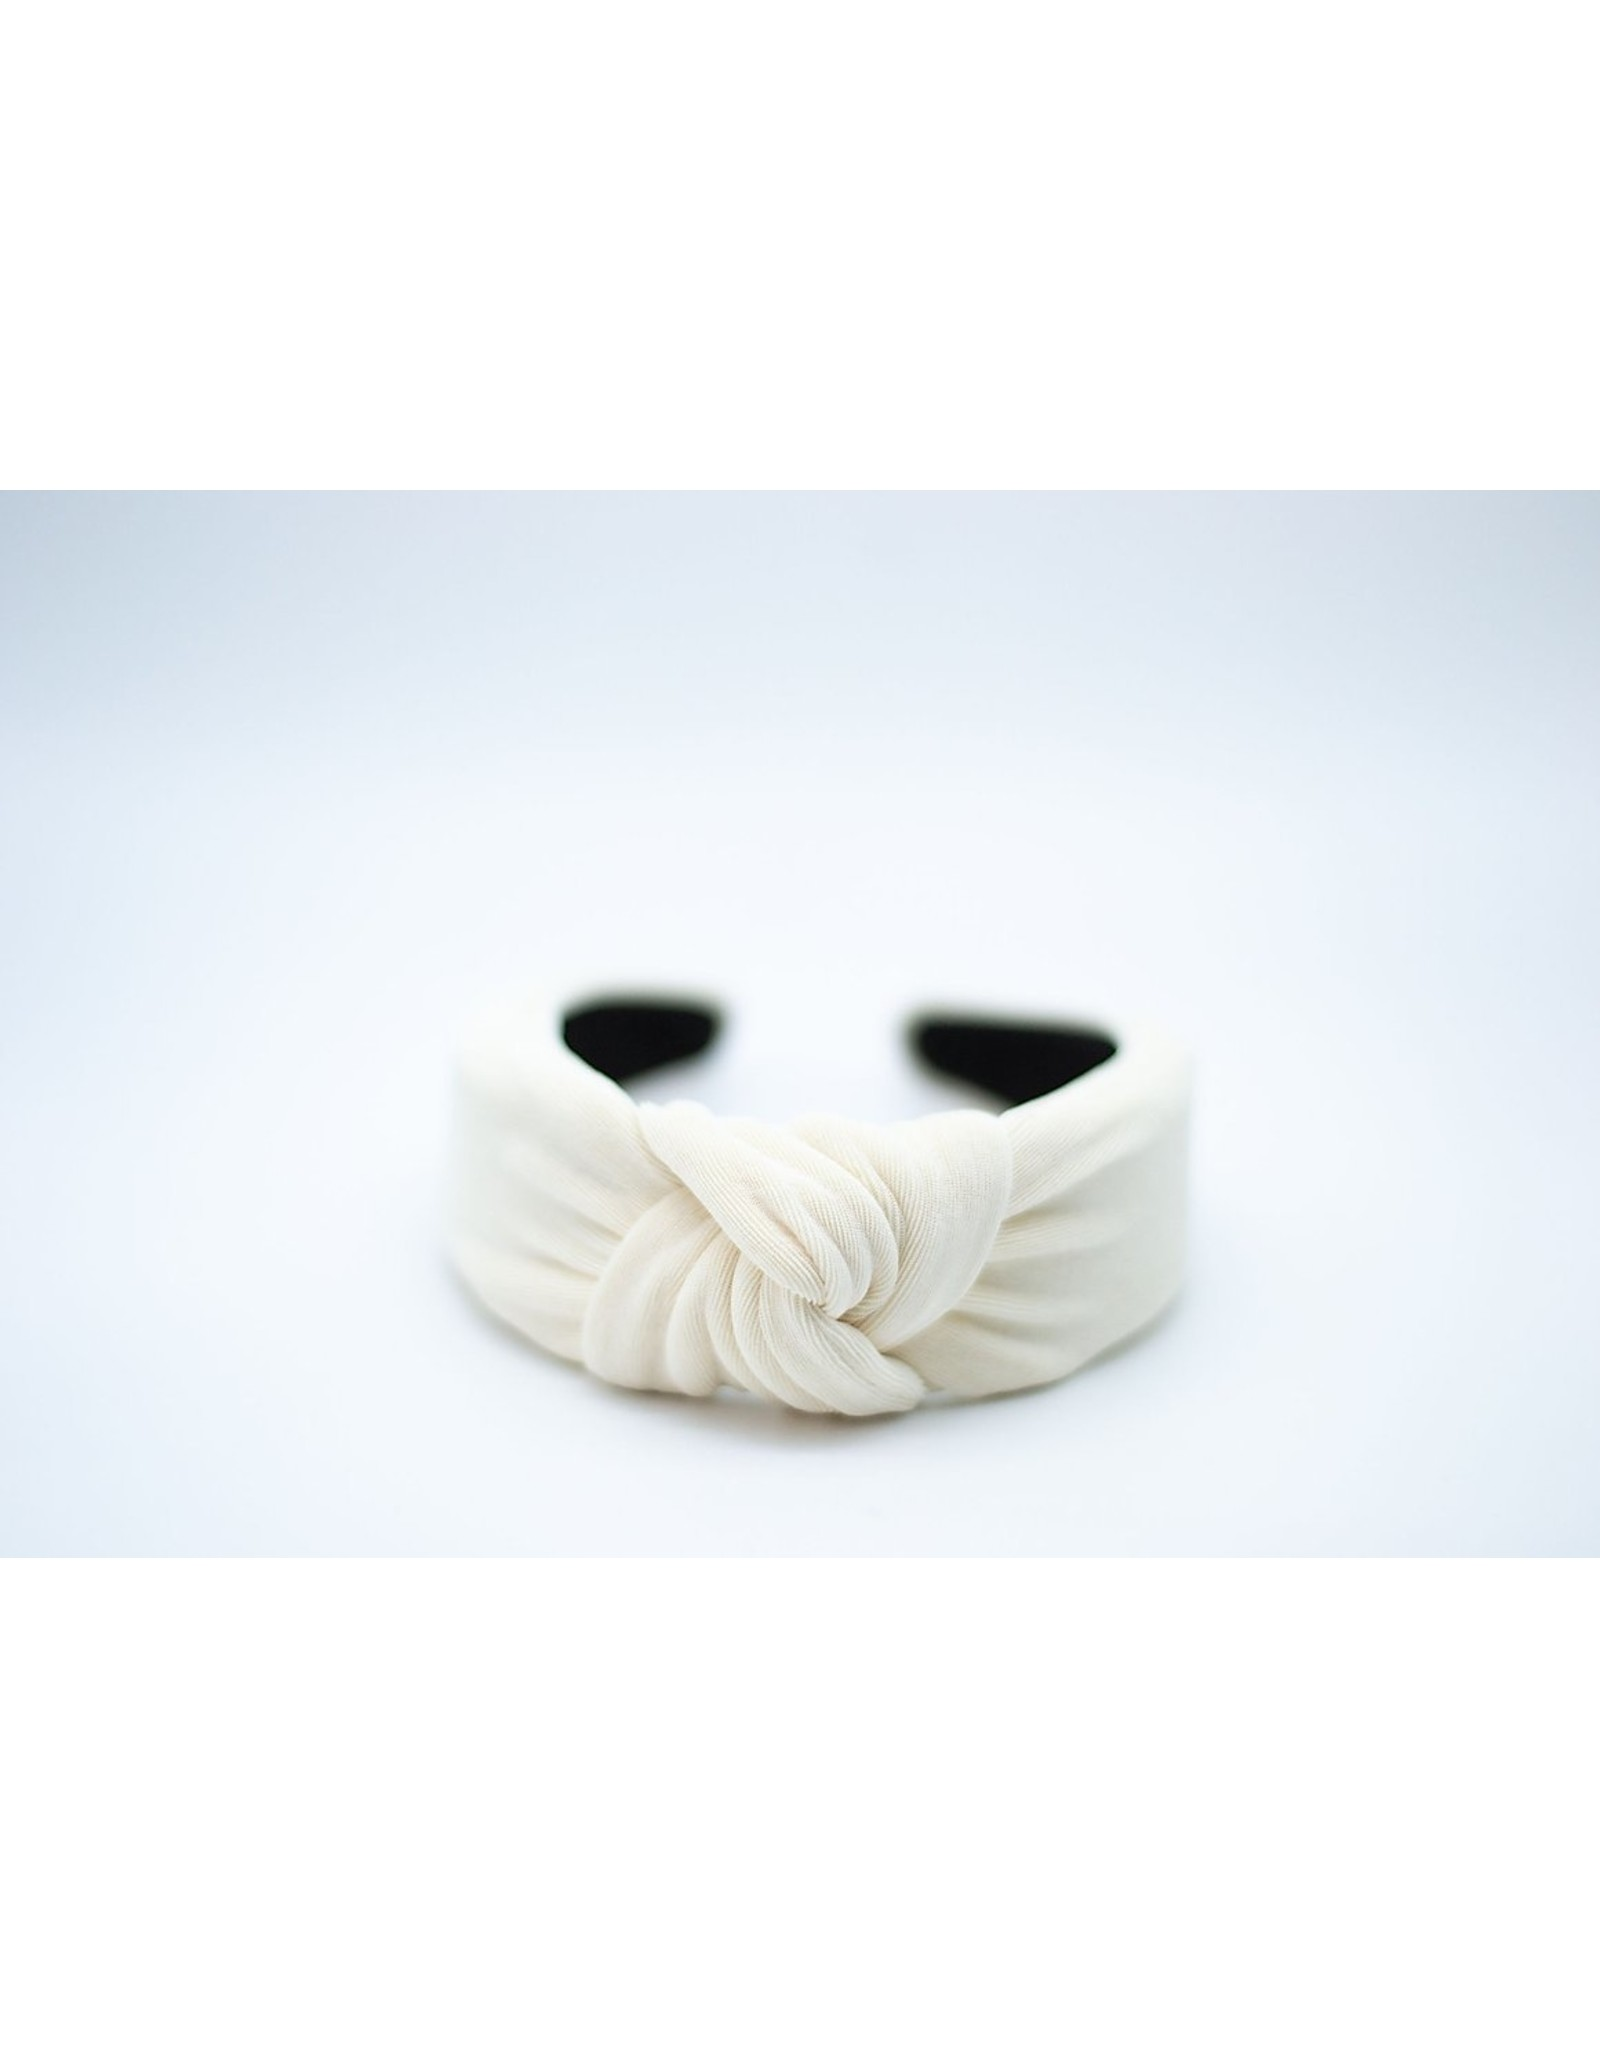 Femme Faire Textured Ivory Knotted Headband